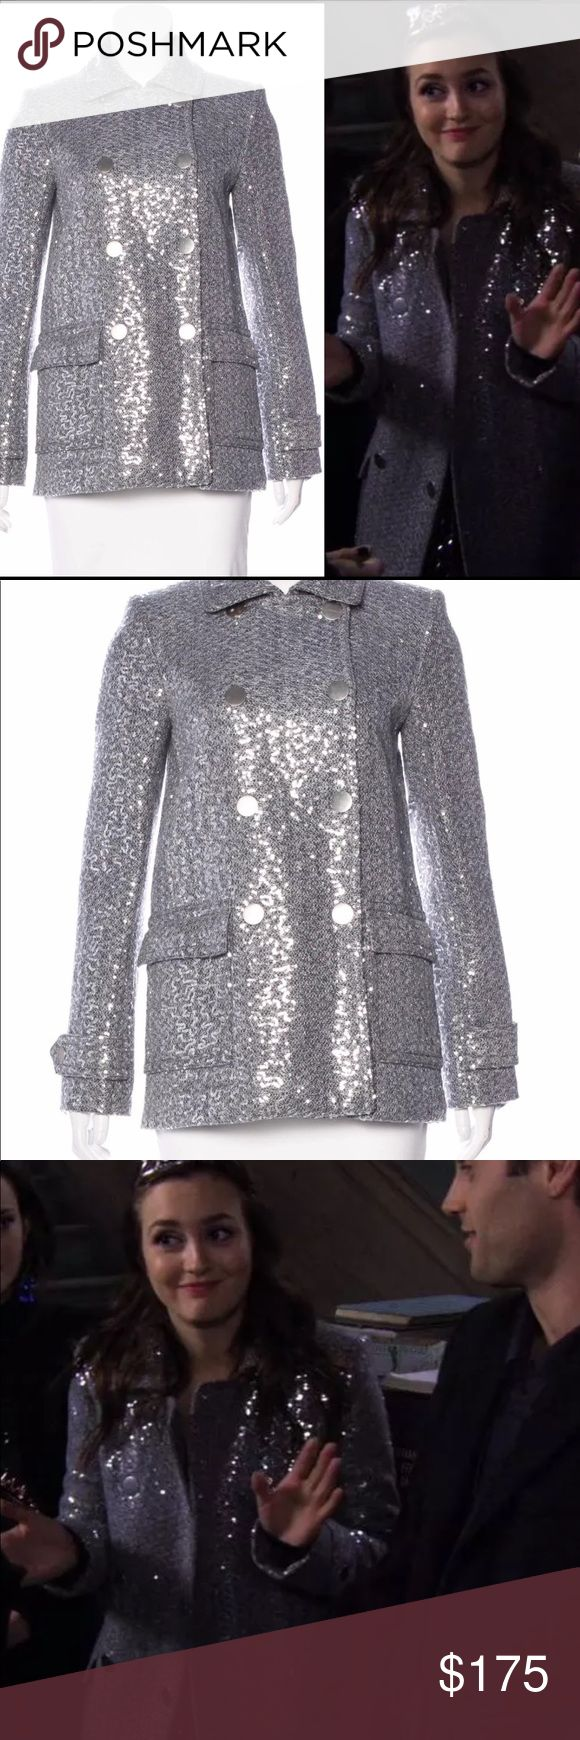 """Alice + Olivia Sequin coat S Blair Waldorf This coat is a must-have for fans of Blair Waldorf's amazing style! Seen on Gossip Girl episode 5x12: Father of the Bride. Size small. Bust: 34"""" Waist: 35"""" Shoulder: 15"""" Length: 27"""" Sleeve: 32""""  60% Polyester, 40% Wool; Lining 95% Polyester, 5% Spandex  Feel free to make me an offer, and check out my other listings for more great Gossip Girl items! Alice + Olivia Jackets & Coats Pea Coats"""